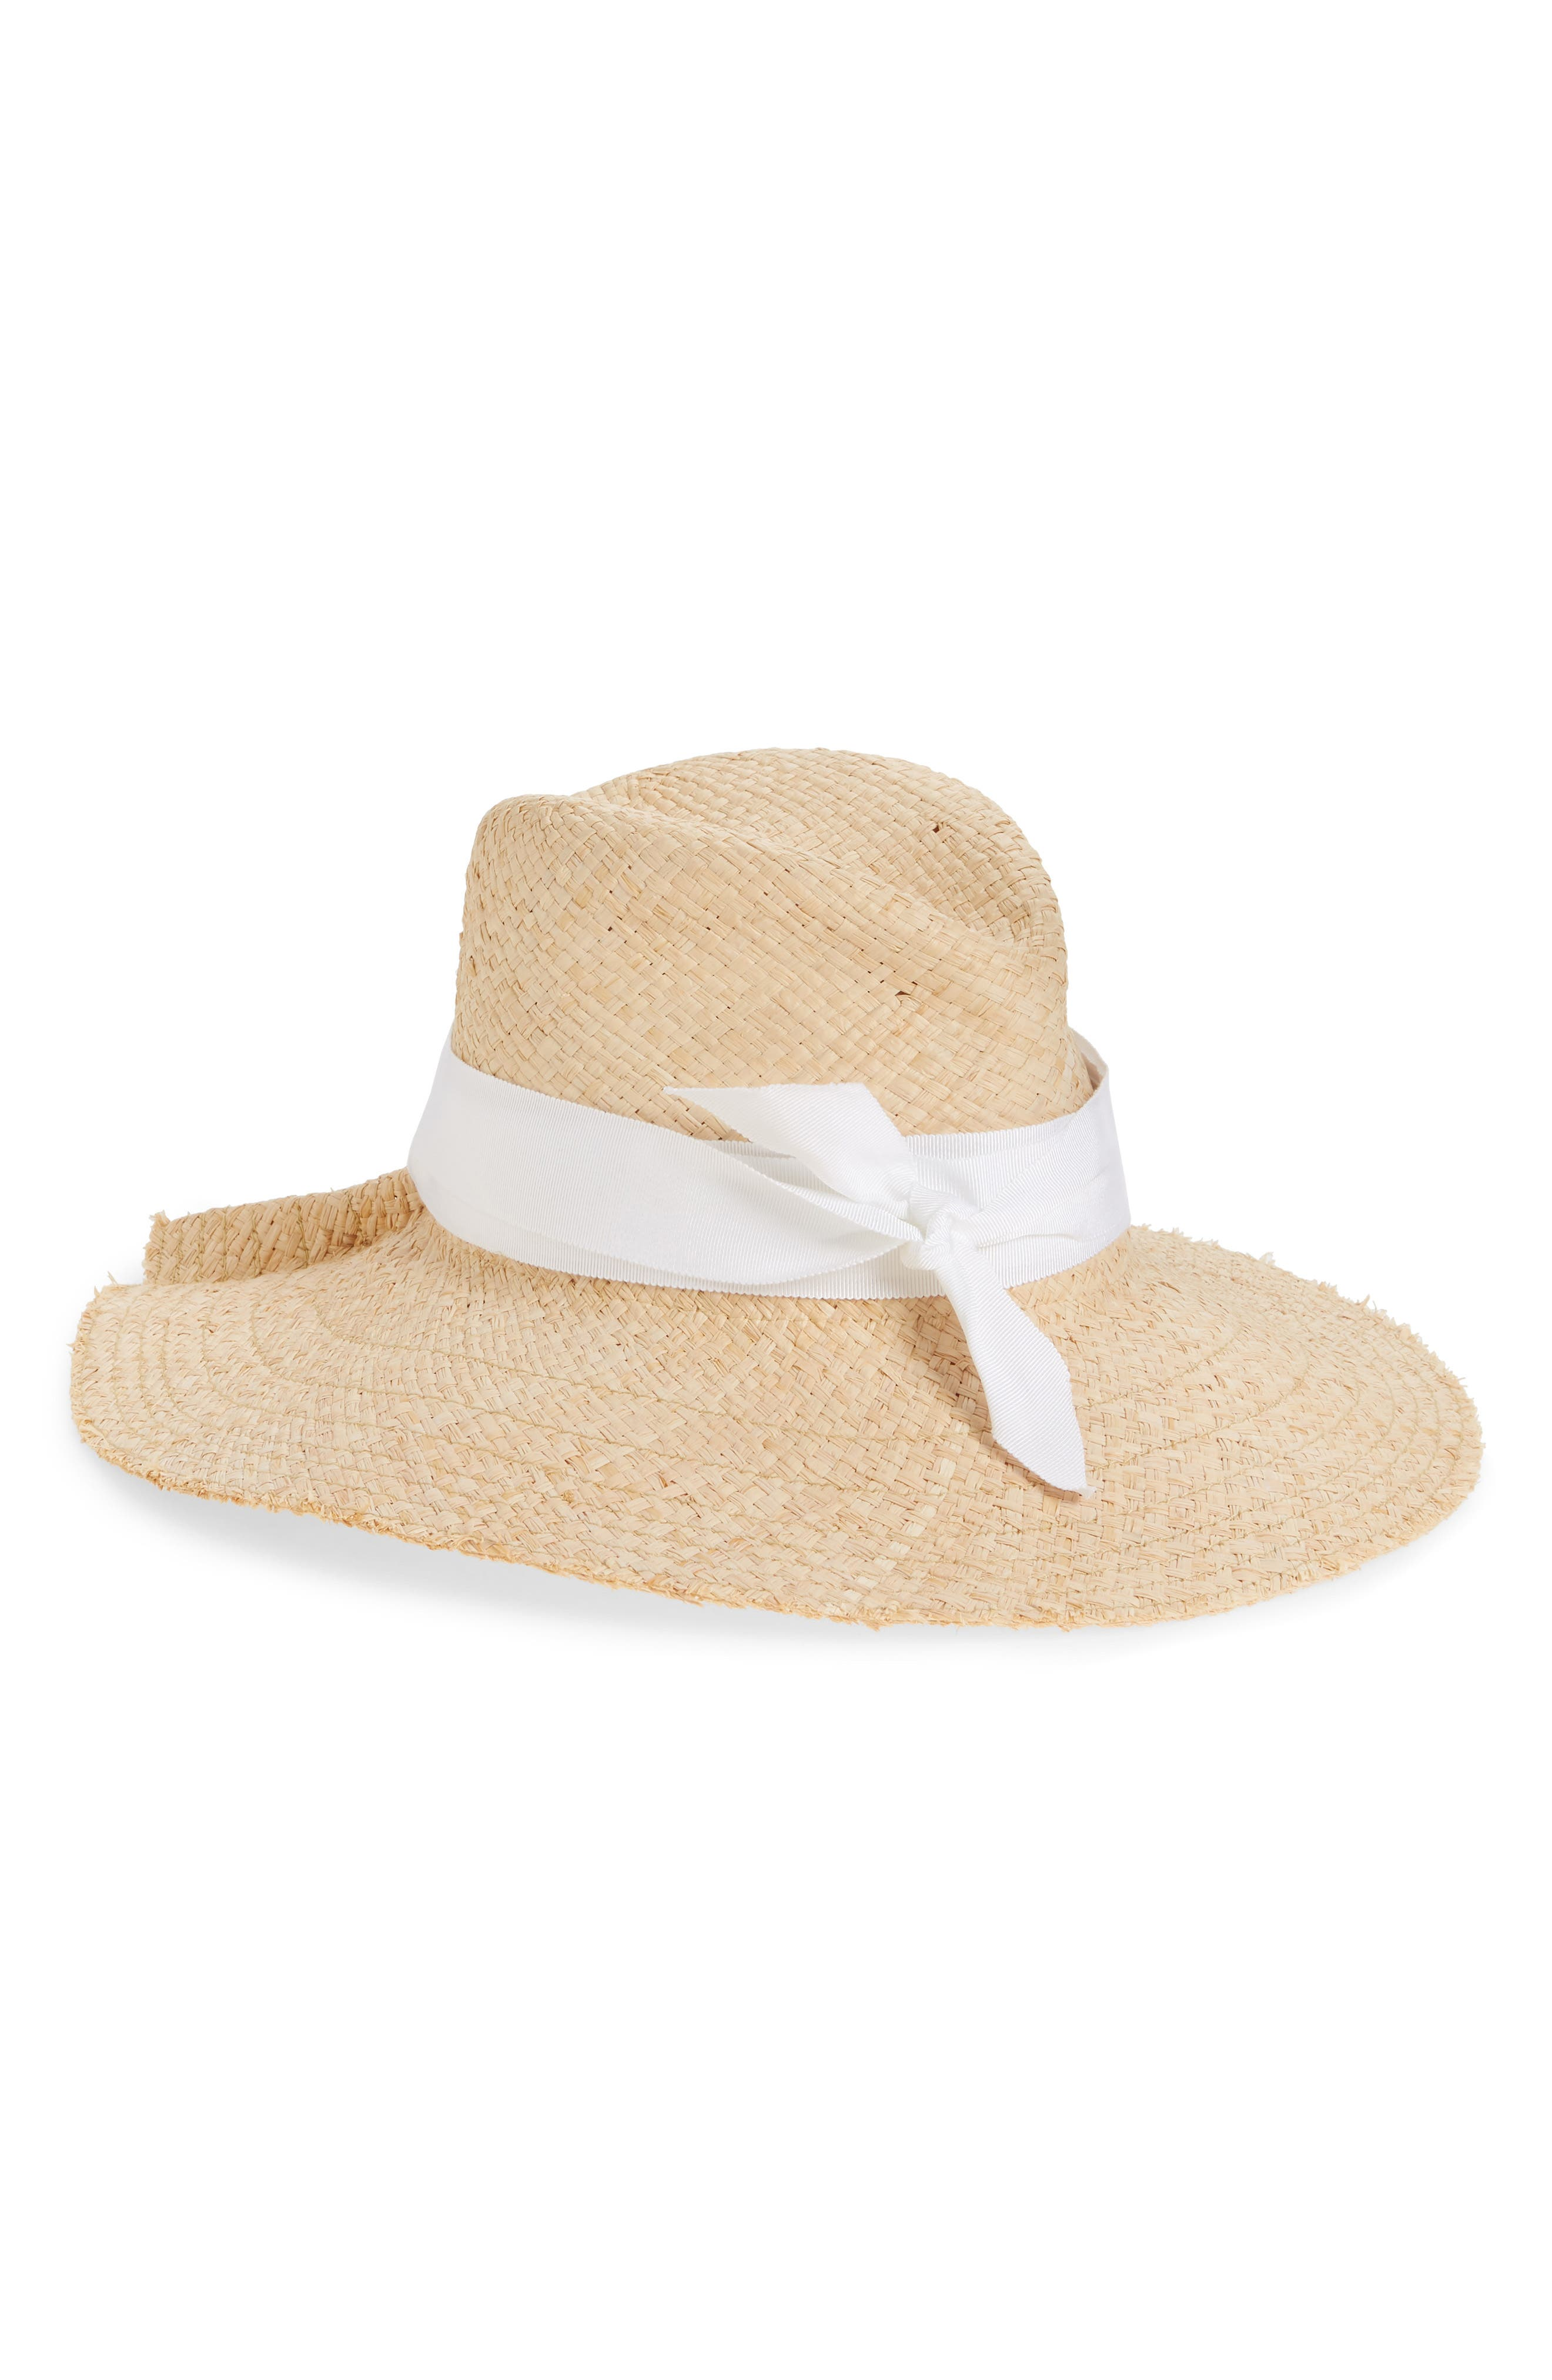 First Aid Straw Hat,                             Main thumbnail 1, color,                             100